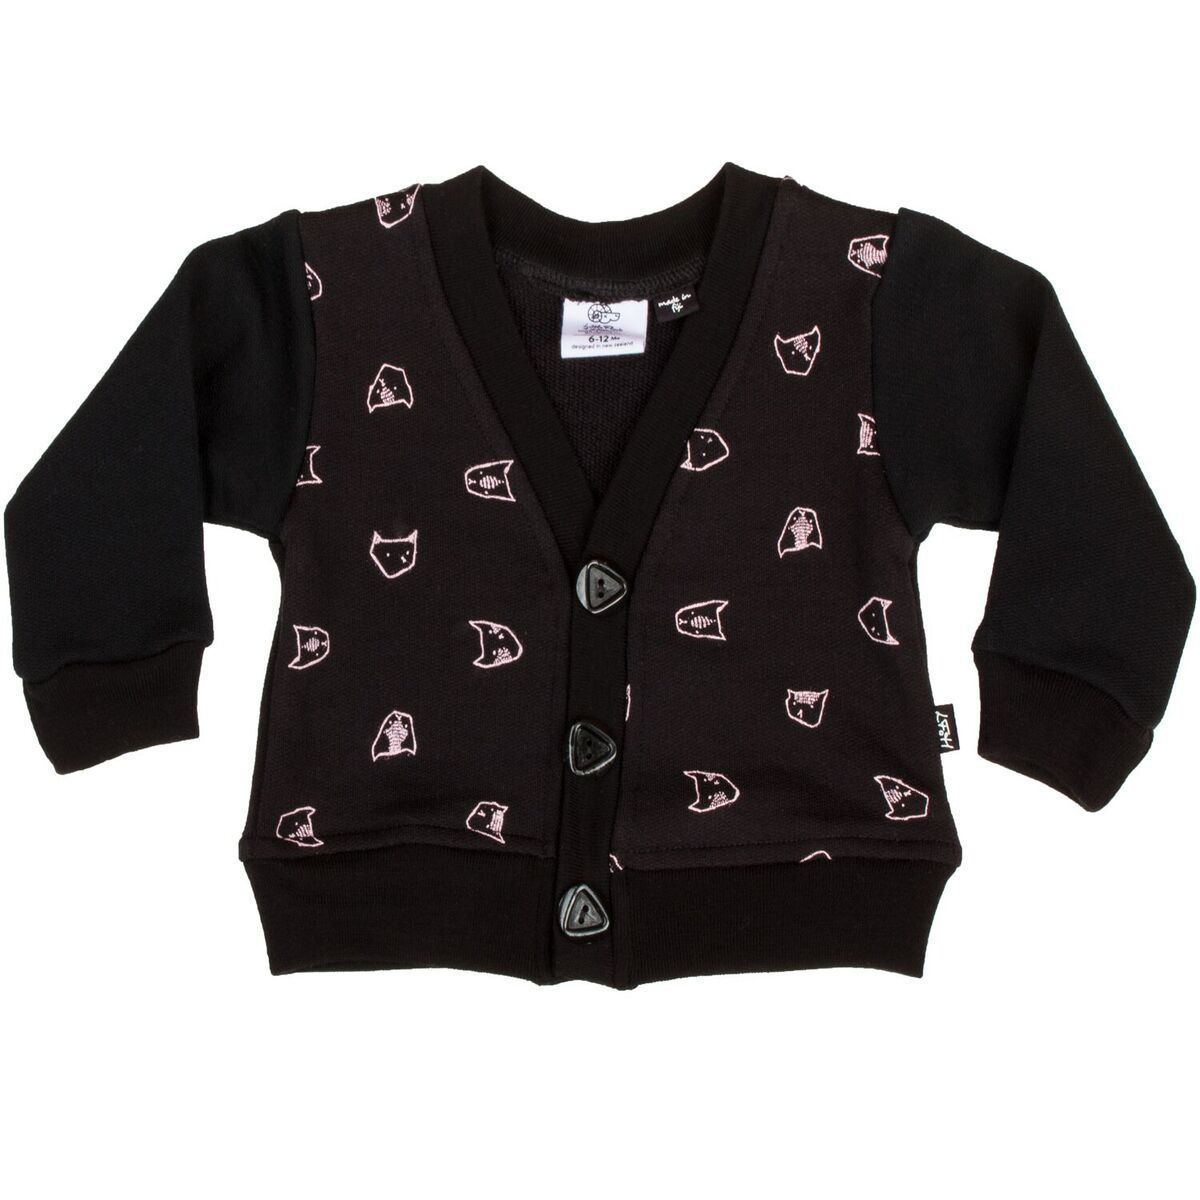 99091511d2 Little Flock of Horrors Merino Wool Little Pop Cardigan | Kids ...